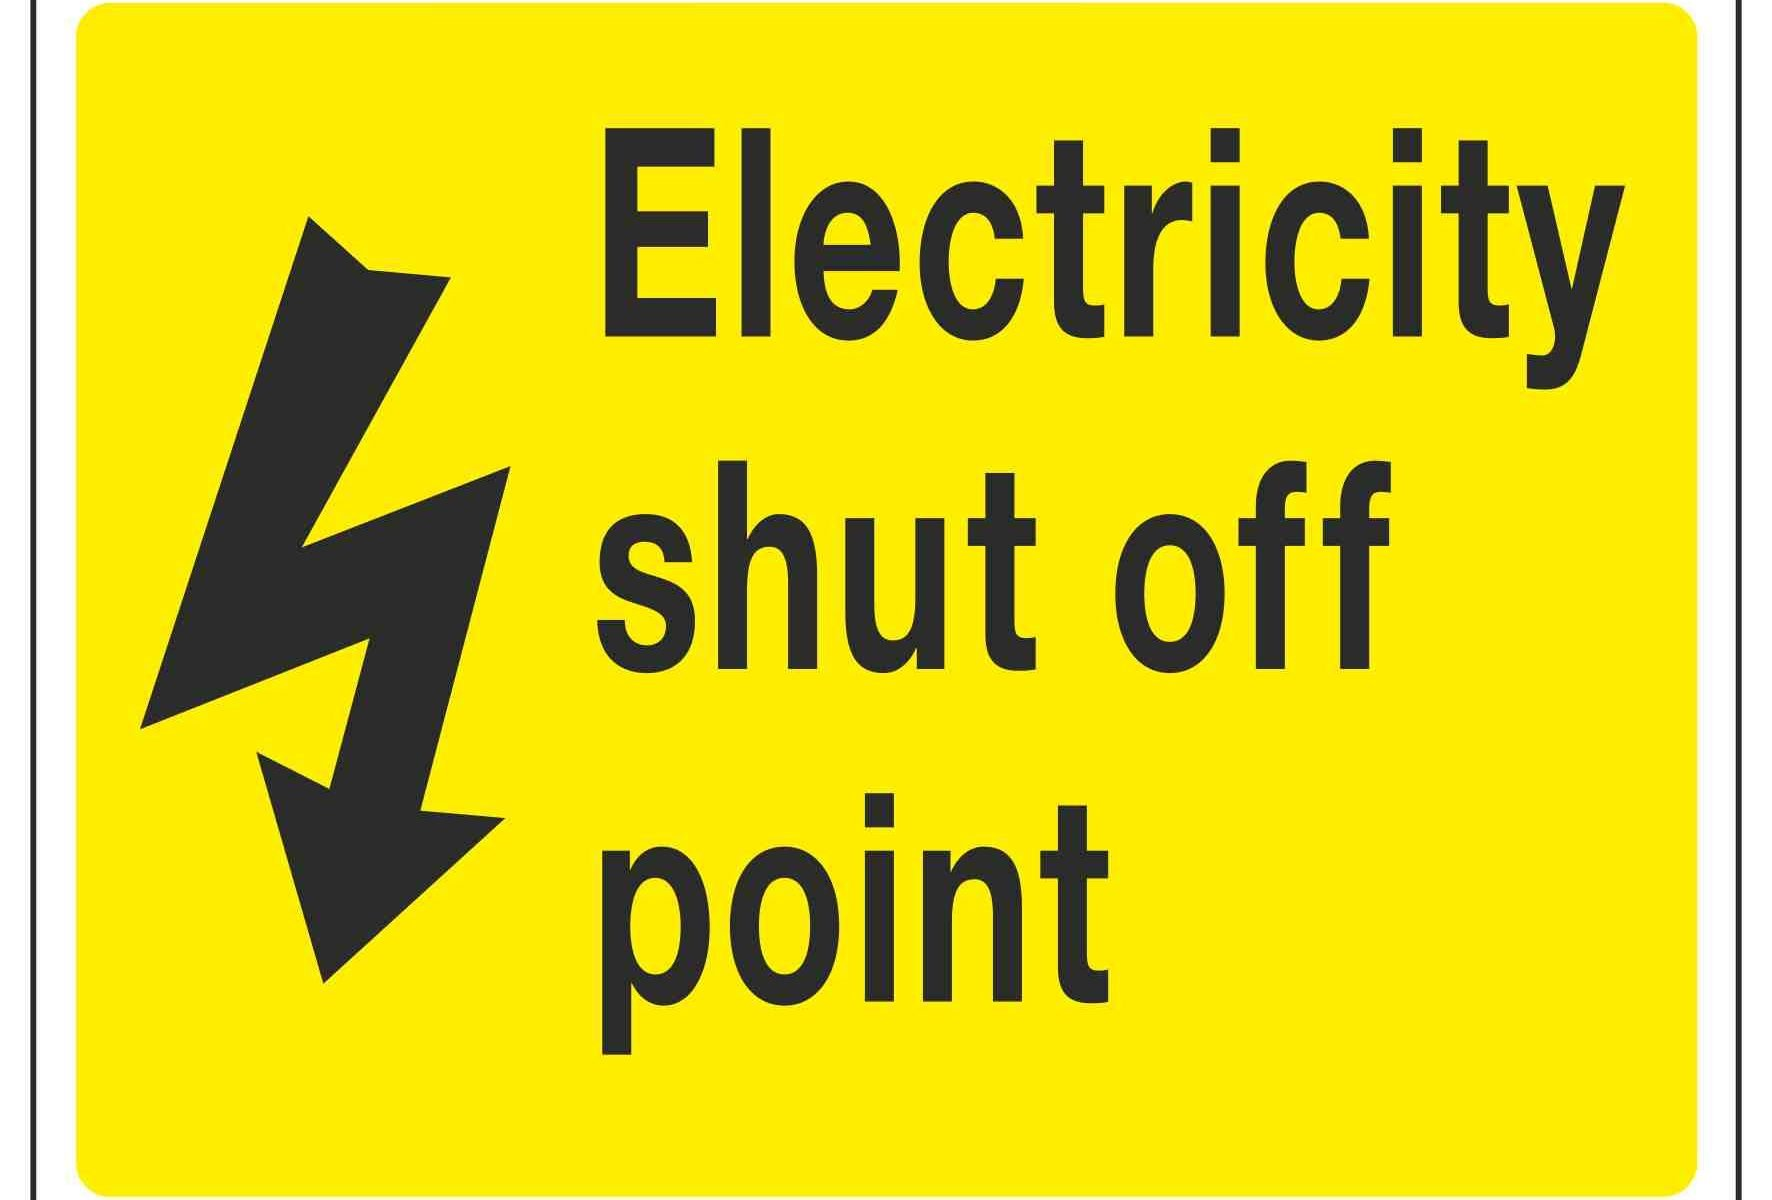 Electricity shut off point